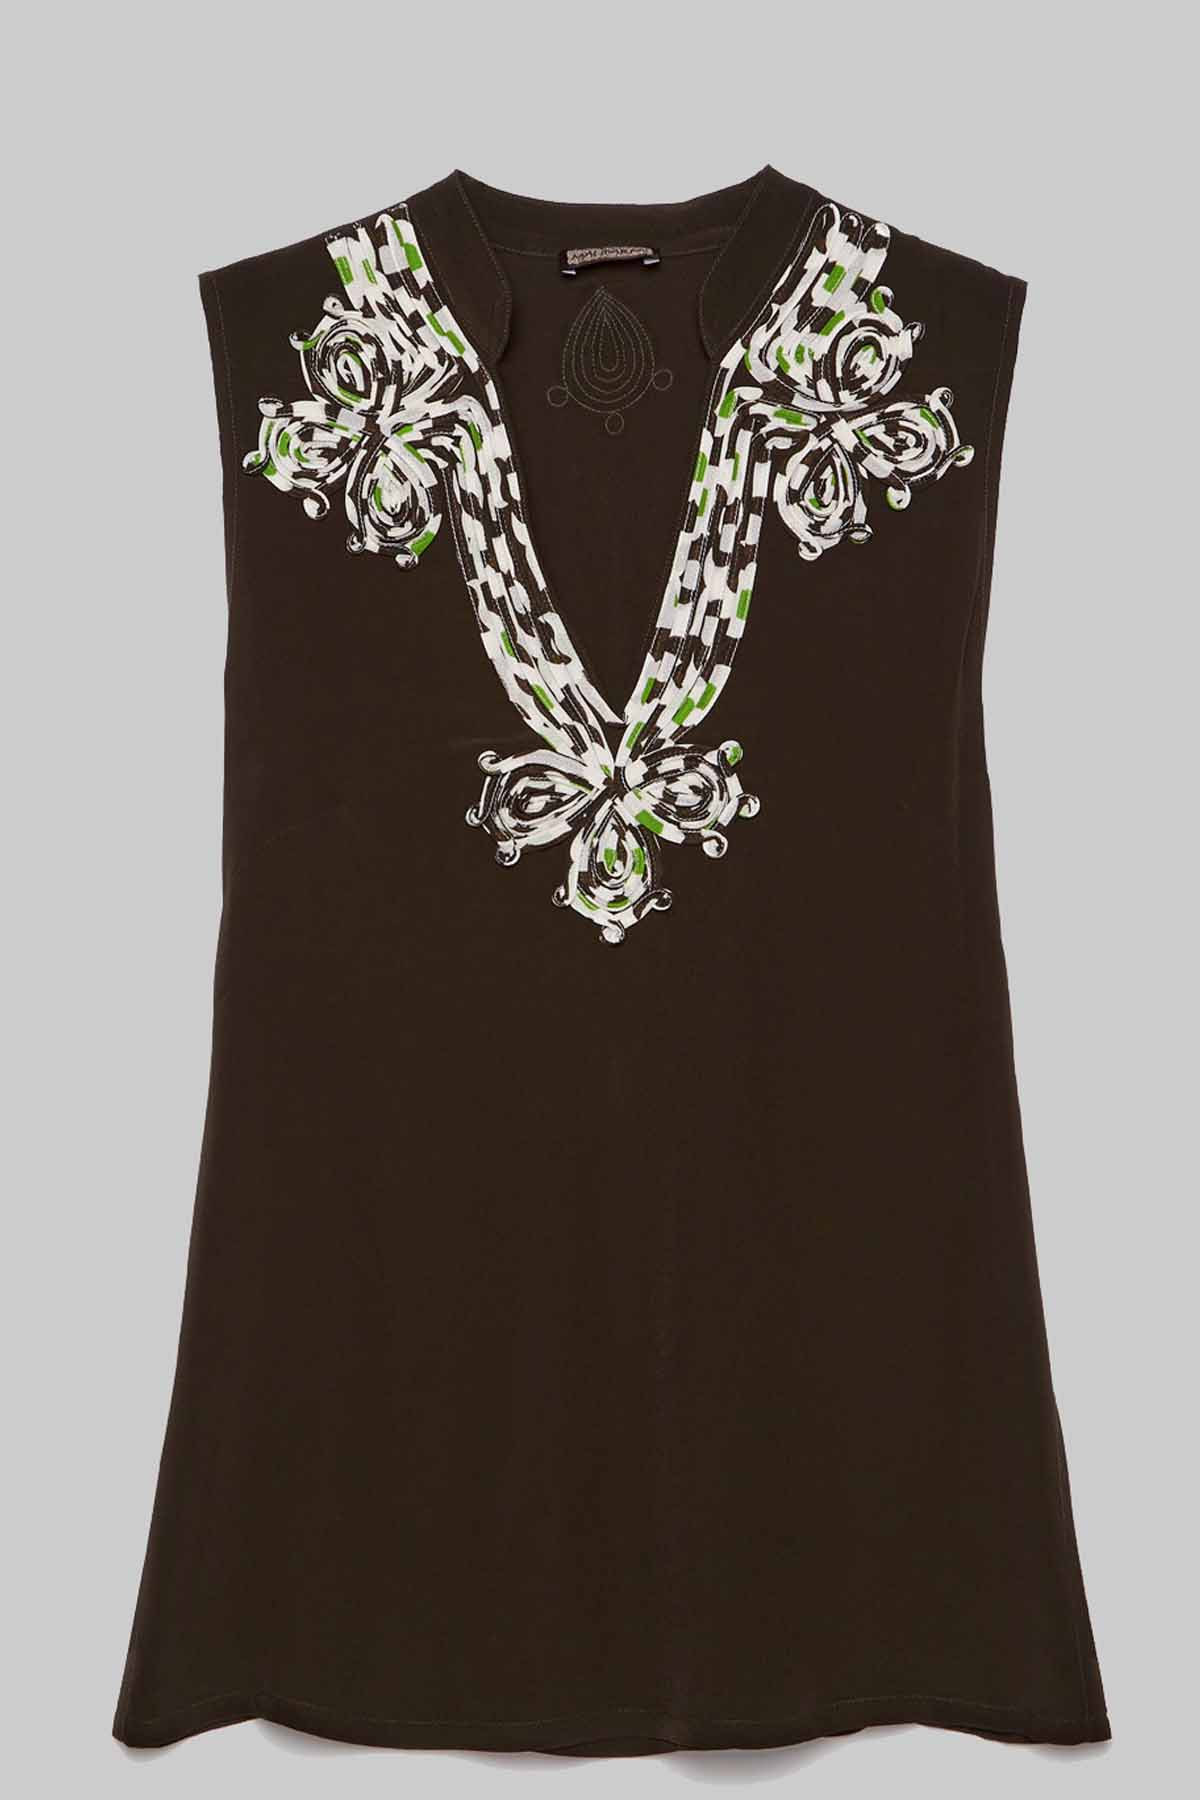 Women's Clothing Top Embroidered in Brown Viscose with Deep Neckline and Embroidered Maliparmi | Shirts and tops | JP53925055440007